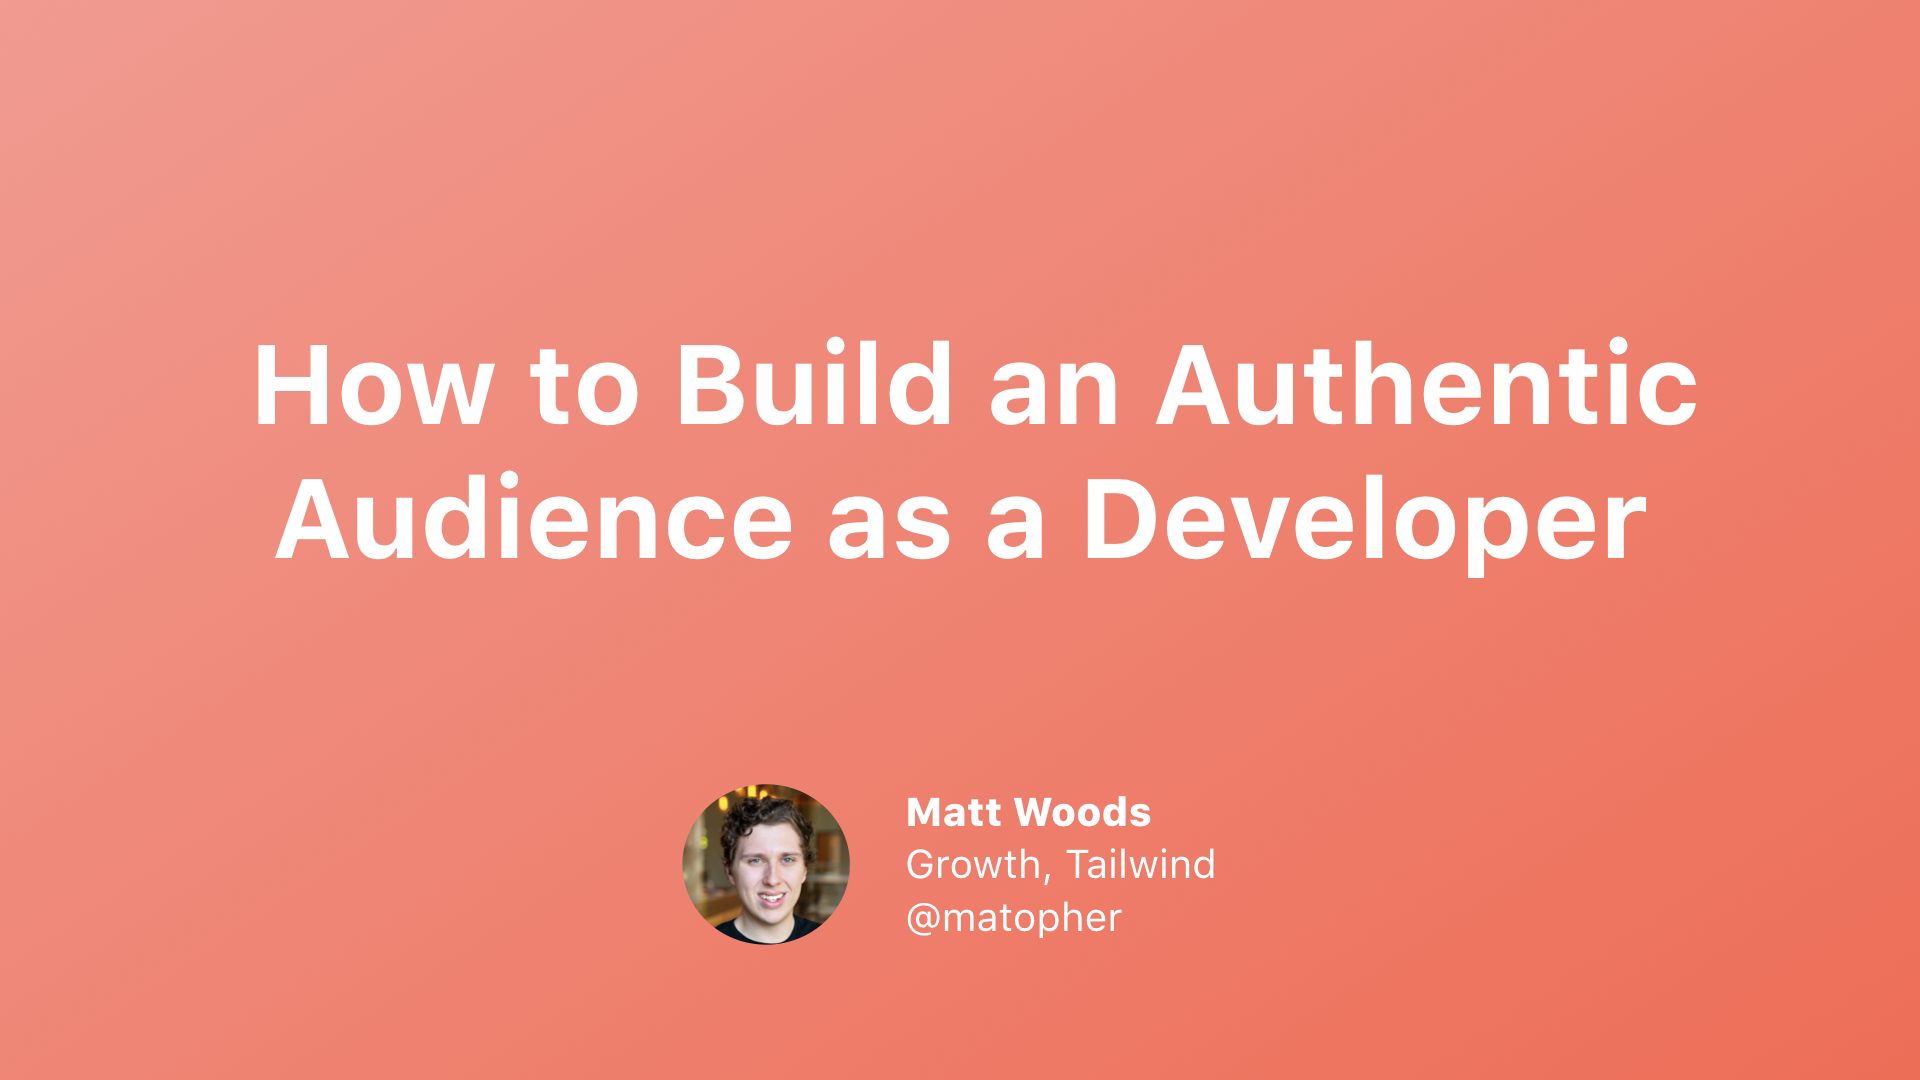 How to Build an Authentic Audience as a Developer cover image